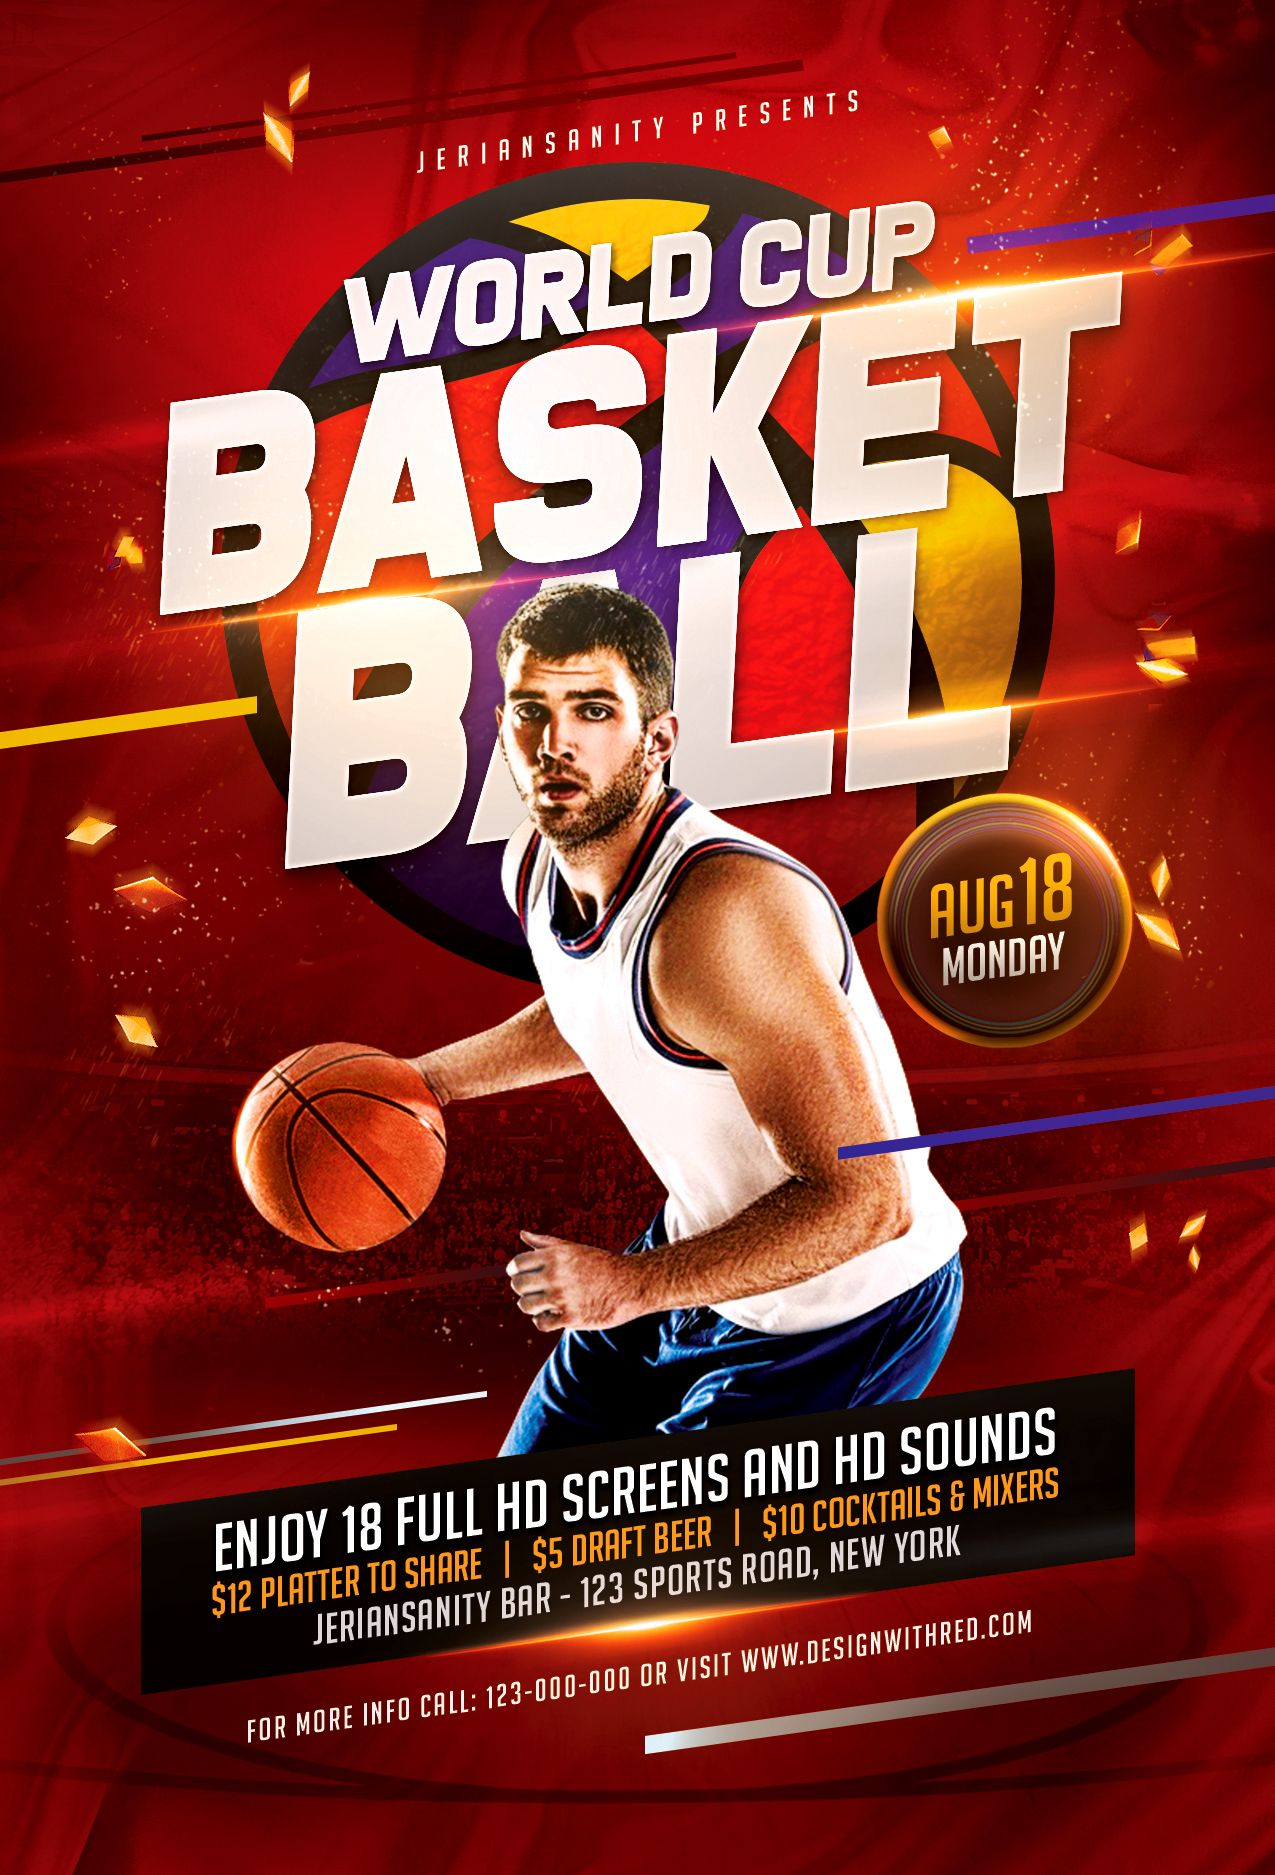 Fiba World Basketball Flyer Template Sports Graphic Design Flyer Sports Flyer